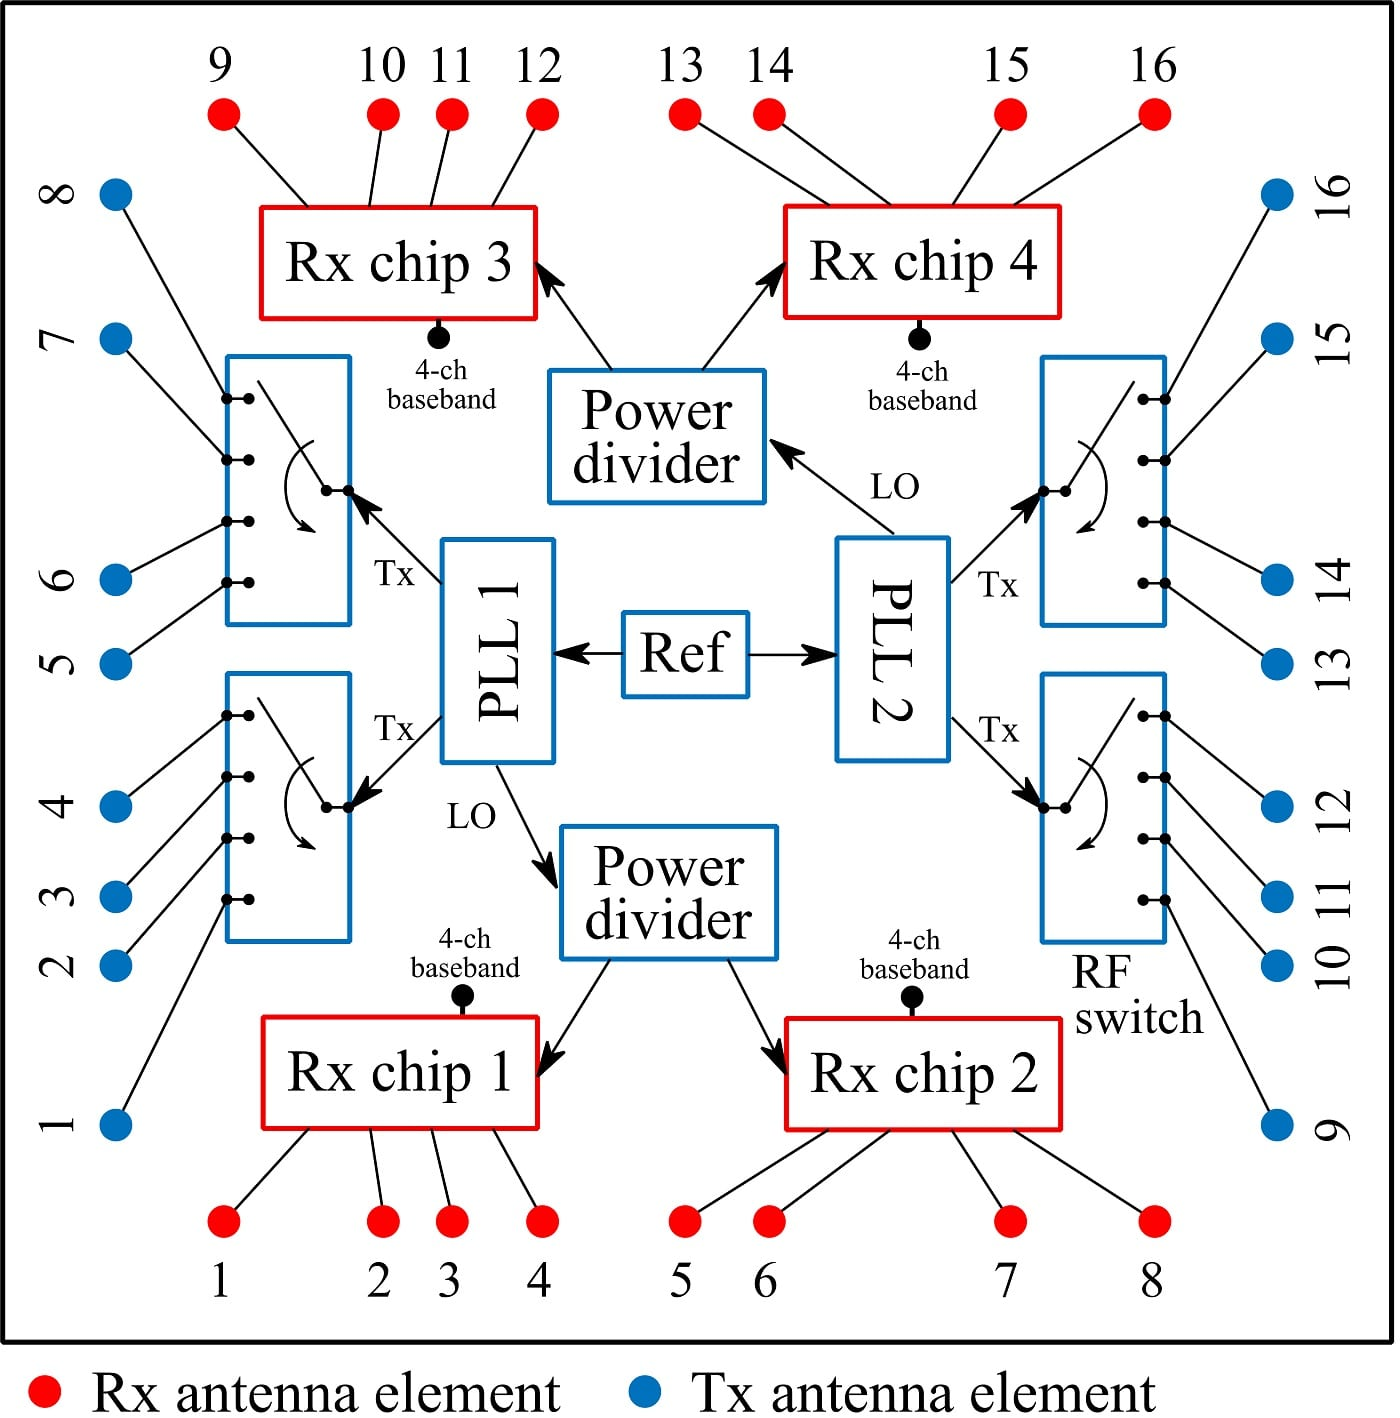 Fig. 1. Block diagram of the RF board of the MIMO radar system